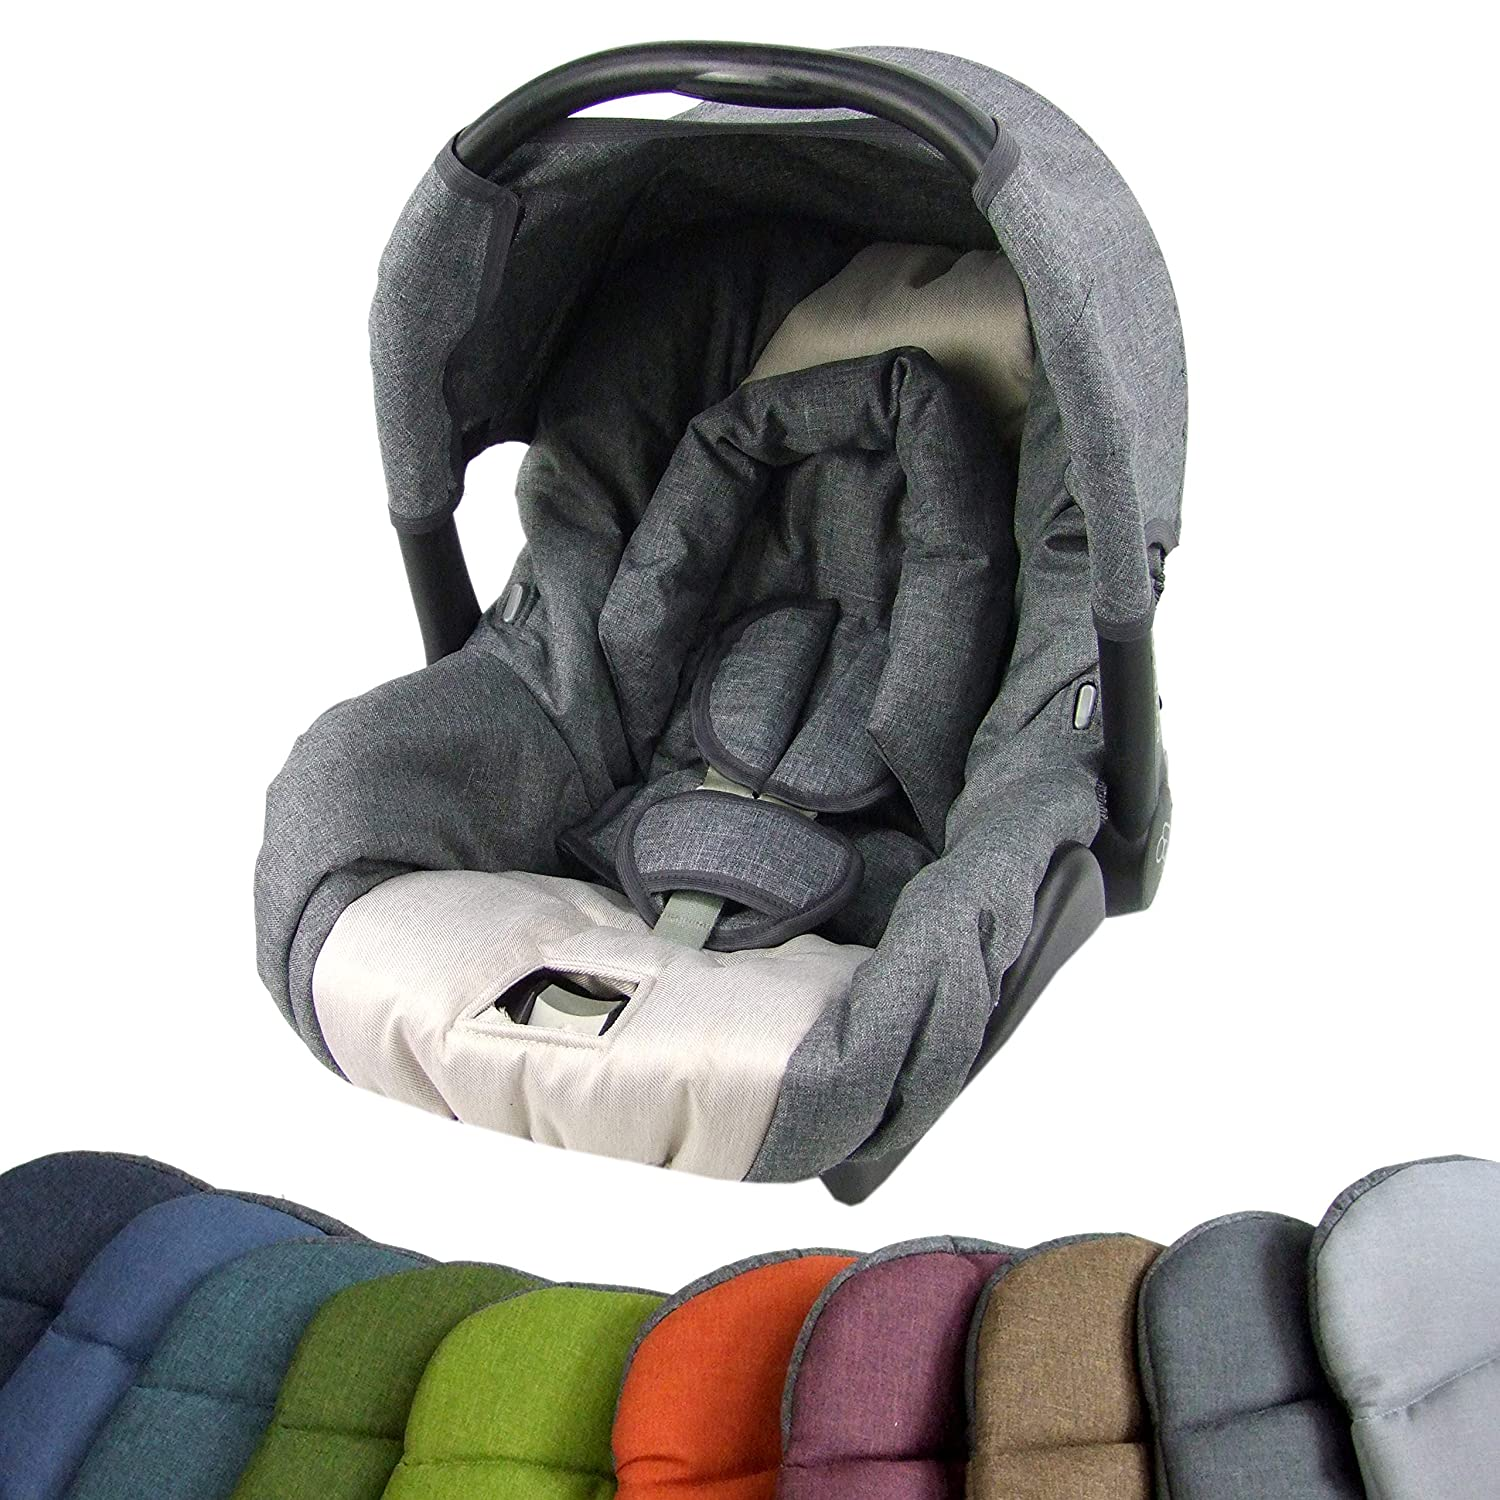 Bambiniwelt Replacement Cover For Maxi Cosi Citi Sps 6 Piece Cover For Baby Car Seat Complete Set Grey Beige Xx Baby